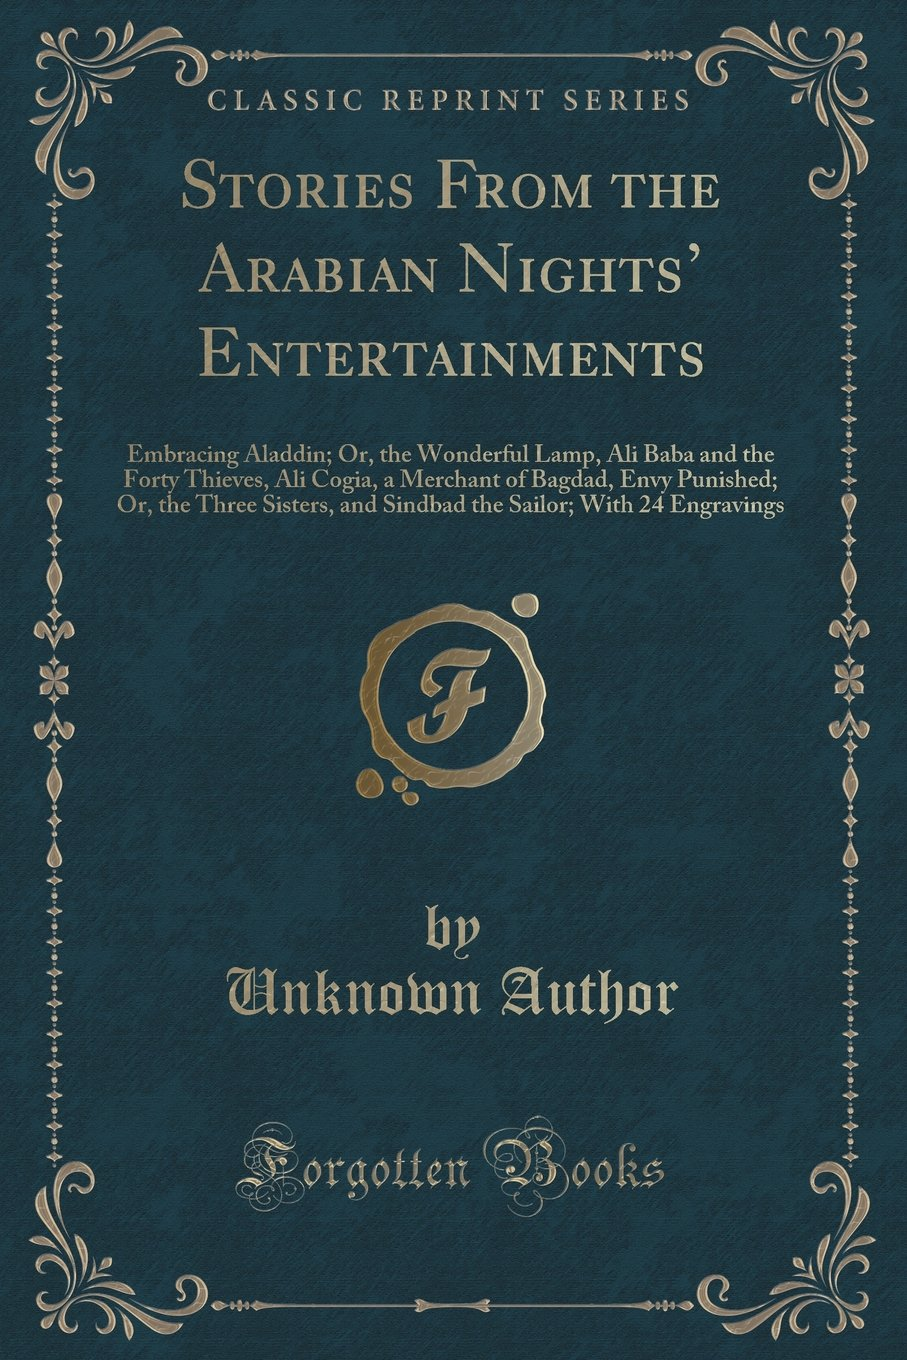 Download Stories From the Arabian Nights' Entertainments: Embracing Aladdin; Or, the Wonderful Lamp, Ali Baba and the Forty Thieves, Ali Cogia, a Merchant of ... and Sindbad the Sailor; With 24 Engravings pdf